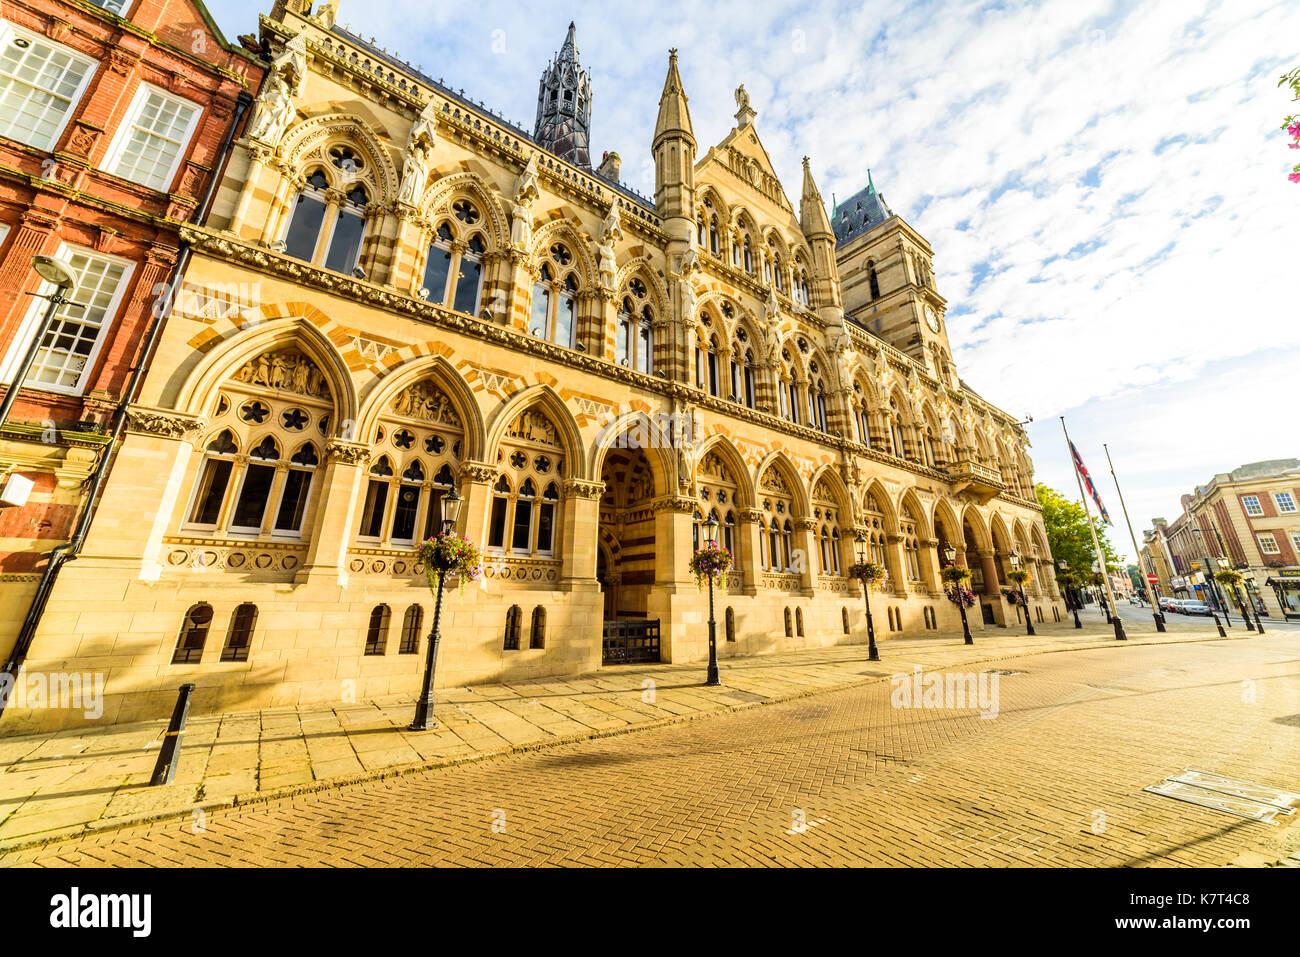 Gothic architecture of Northampton Guildhall building, England. - Stock Image